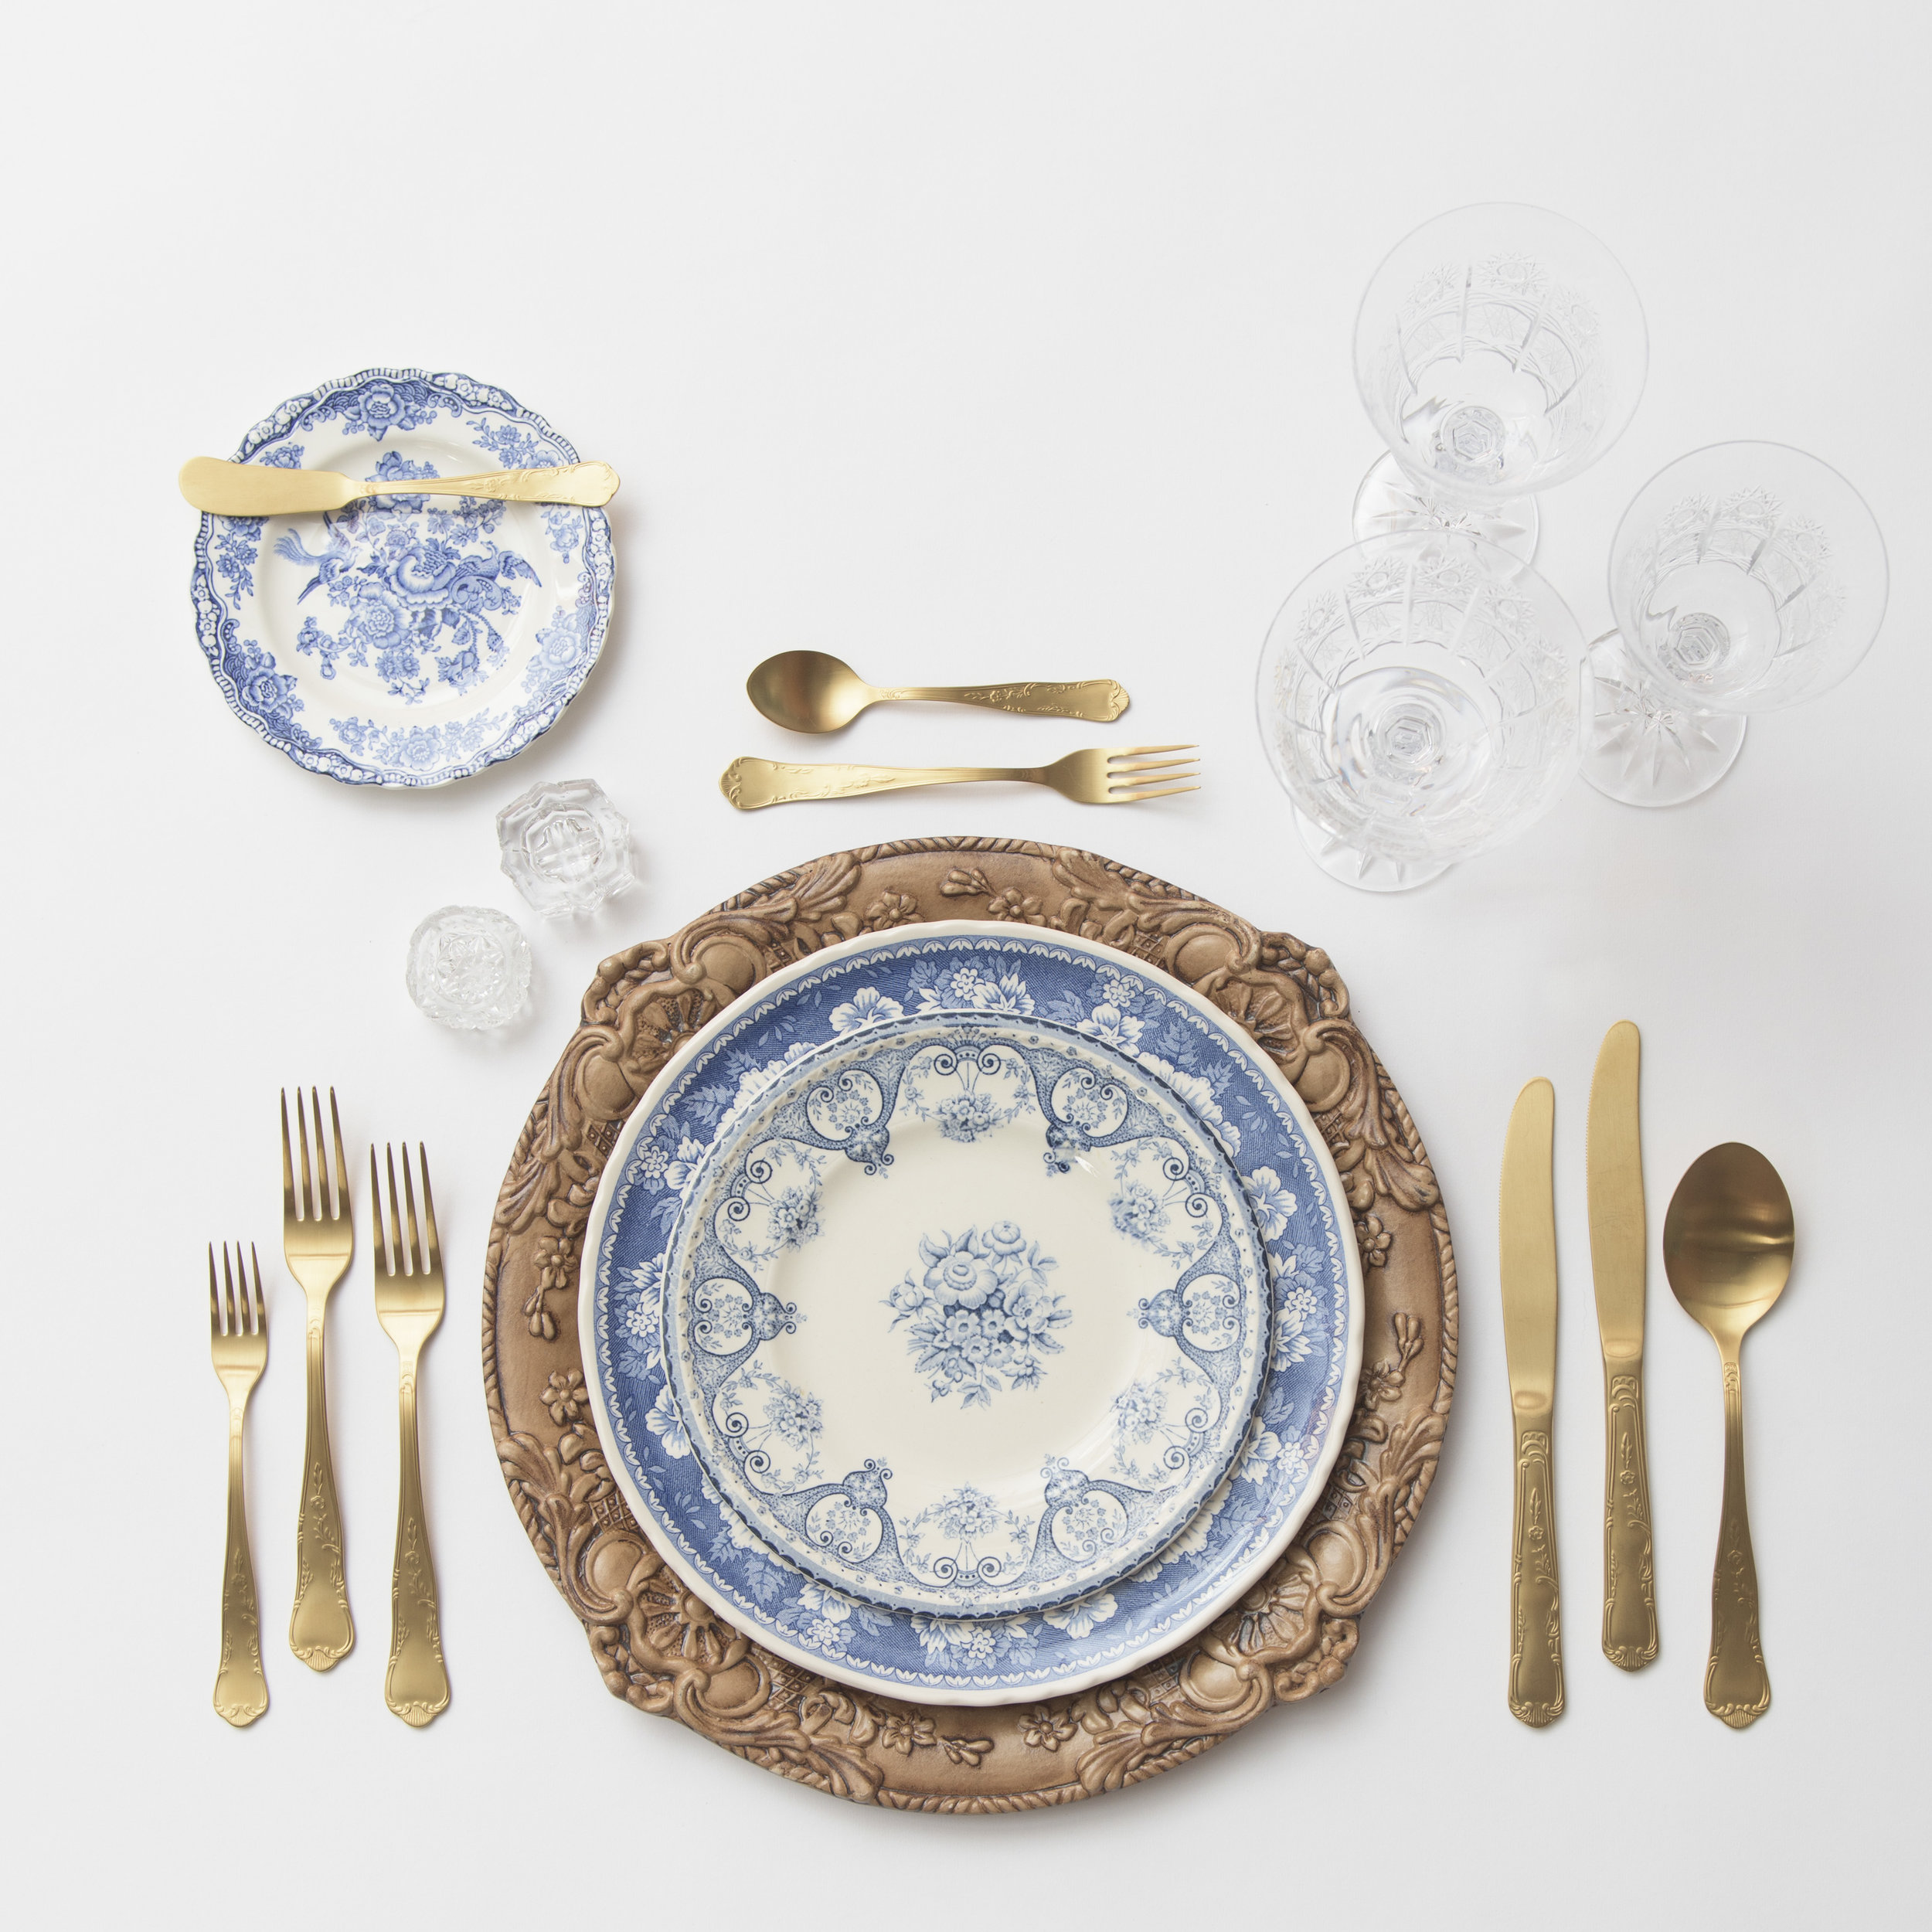 RENT: Verona Charger in Walnut + Blue Garden Collection Vintage China + Chateau Flatware in Matte Gold + Czech Crystal Stemware + Antique Crystal Salt Cellars   SHOP: Verona Charger in Walnut